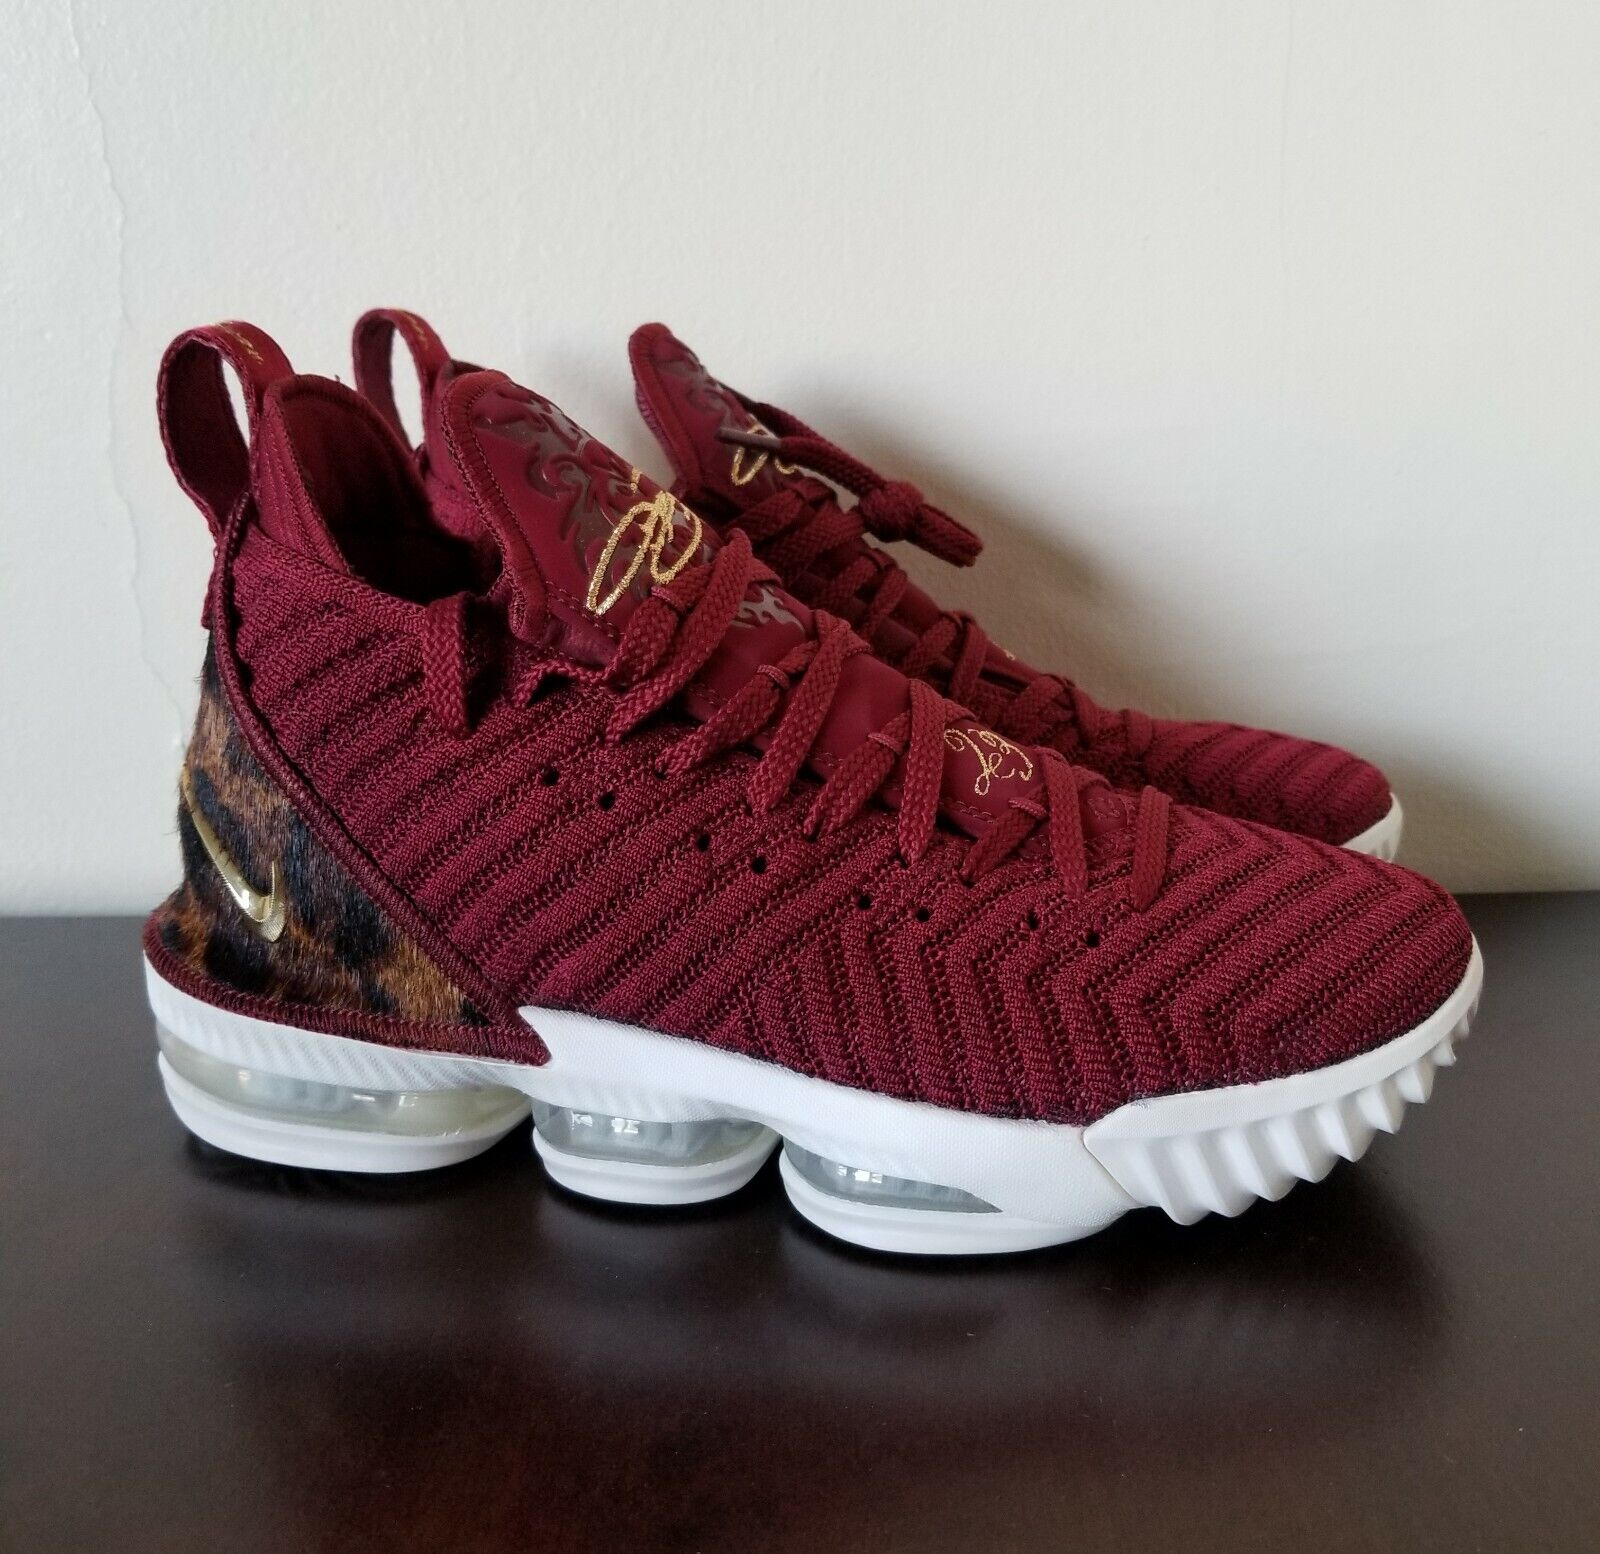 c16bca42ba735 Lebron XVI THE KING Team Red gold Leopard Print LTD Men s Sz 7 AO2588-601